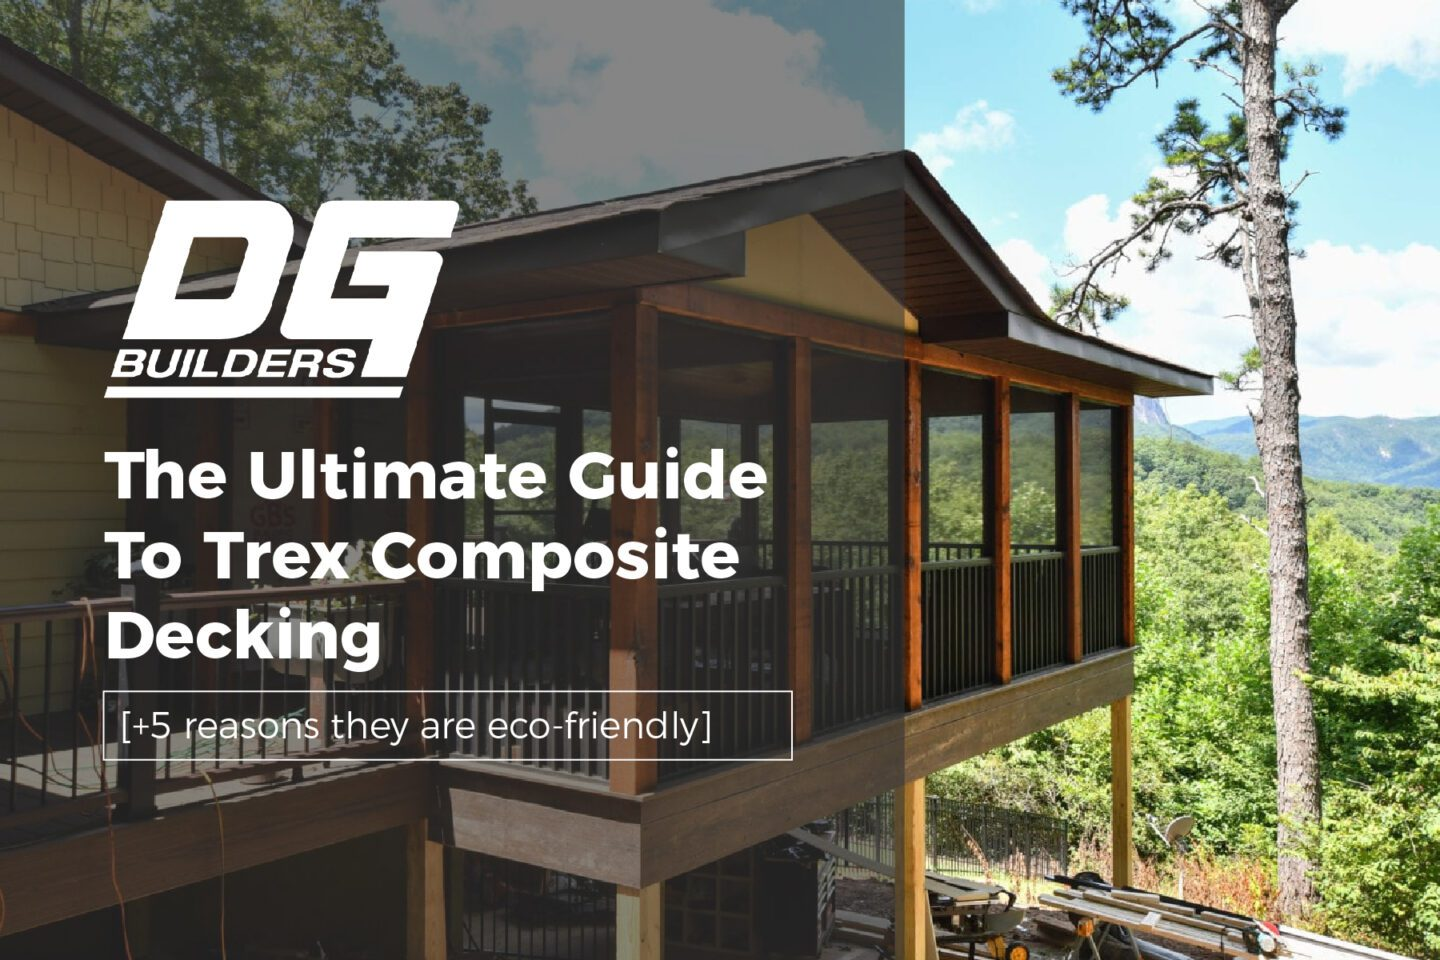 The Ultimate Guide To Trex Composite Decking [+5 reasons they are eco-friendly] 1